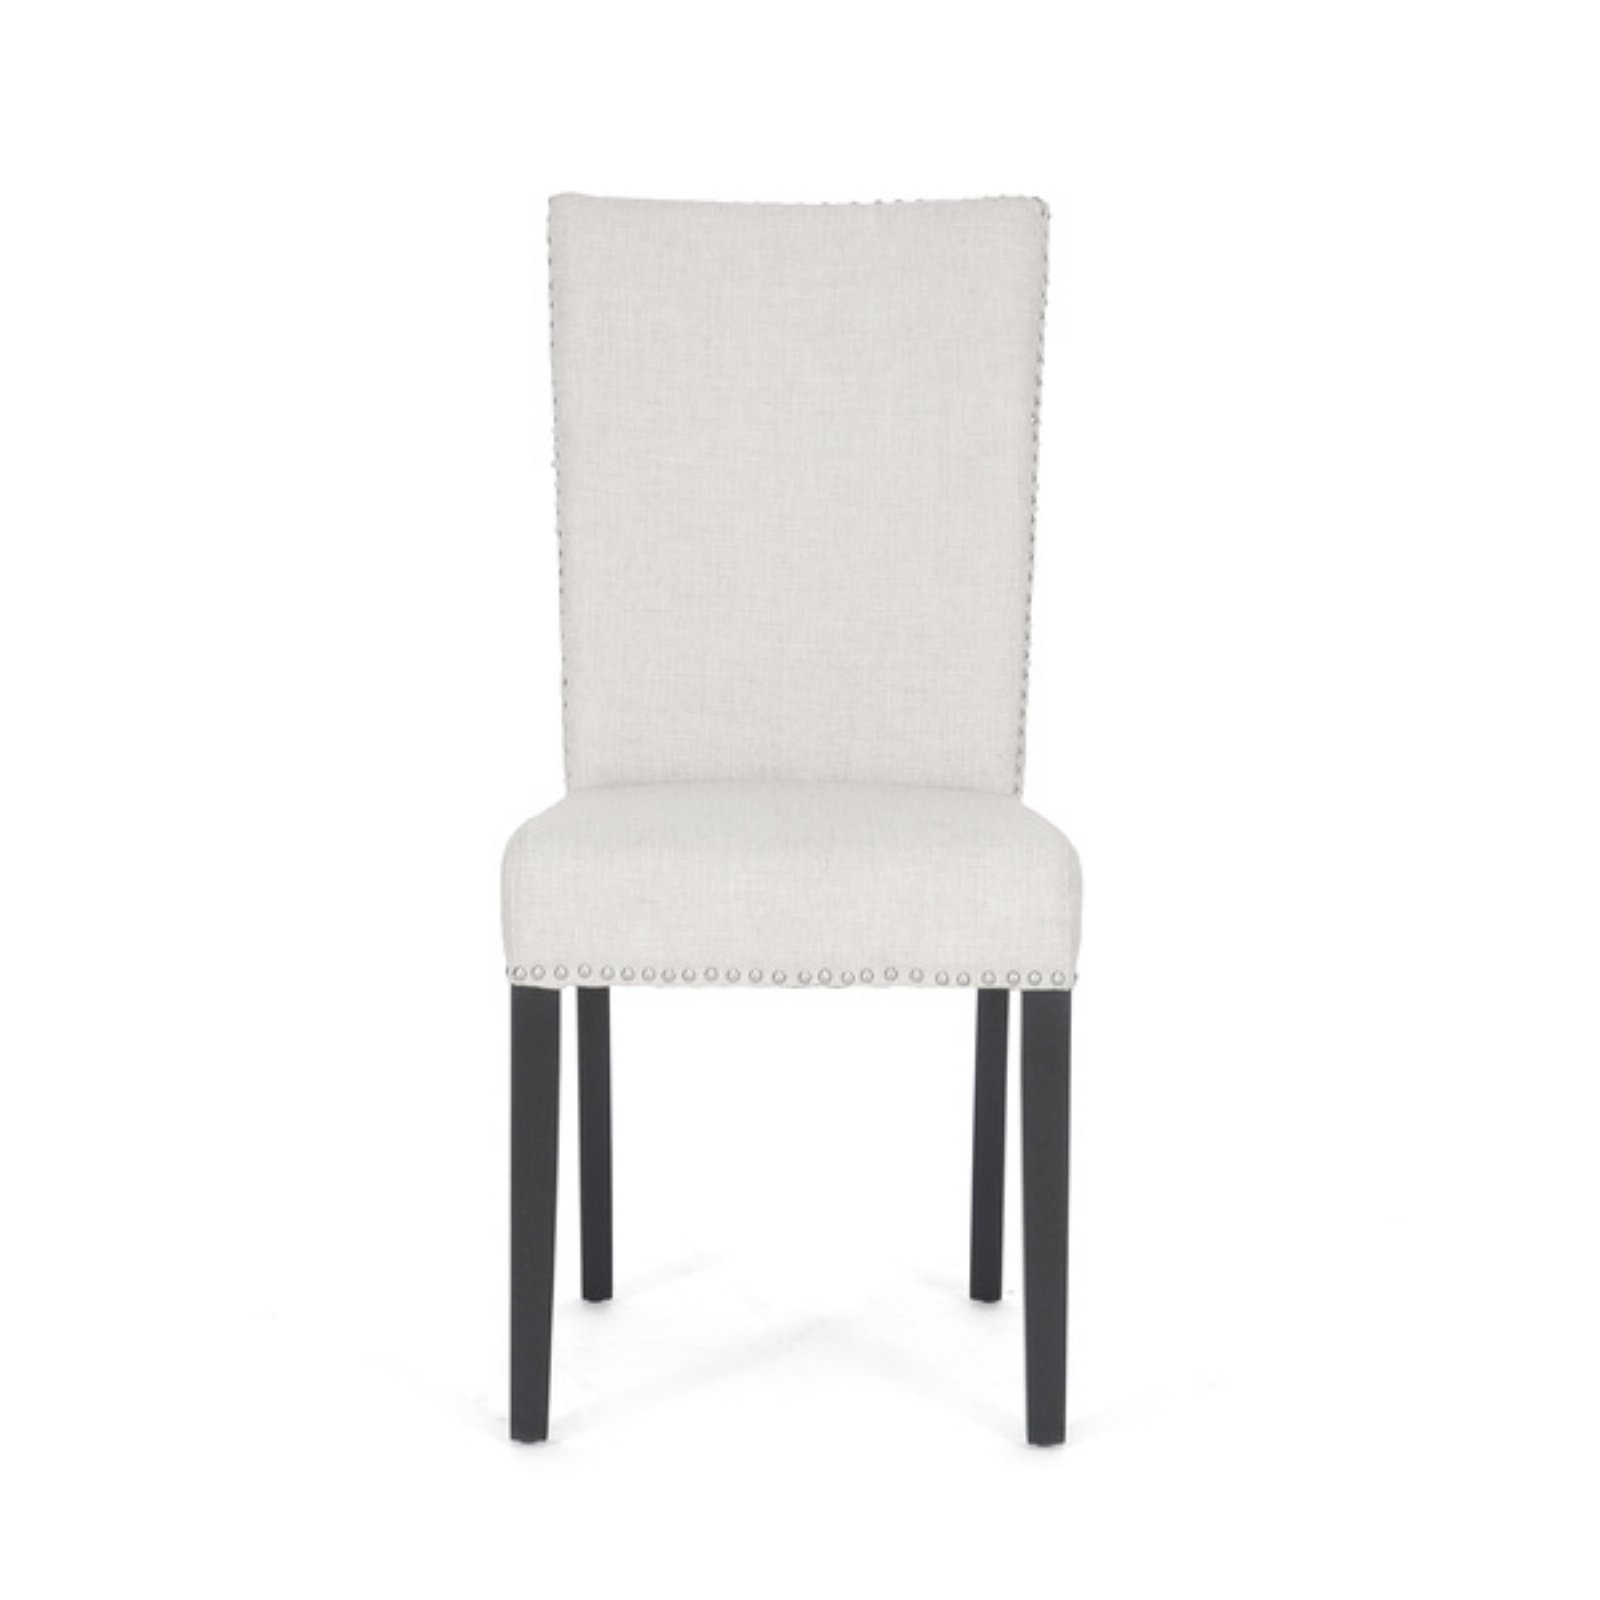 Baxton Studio Harrowgate Linen Upholstered Modern Dining Chair with Nailheads, Set of 2, Beige by Baxton Studio